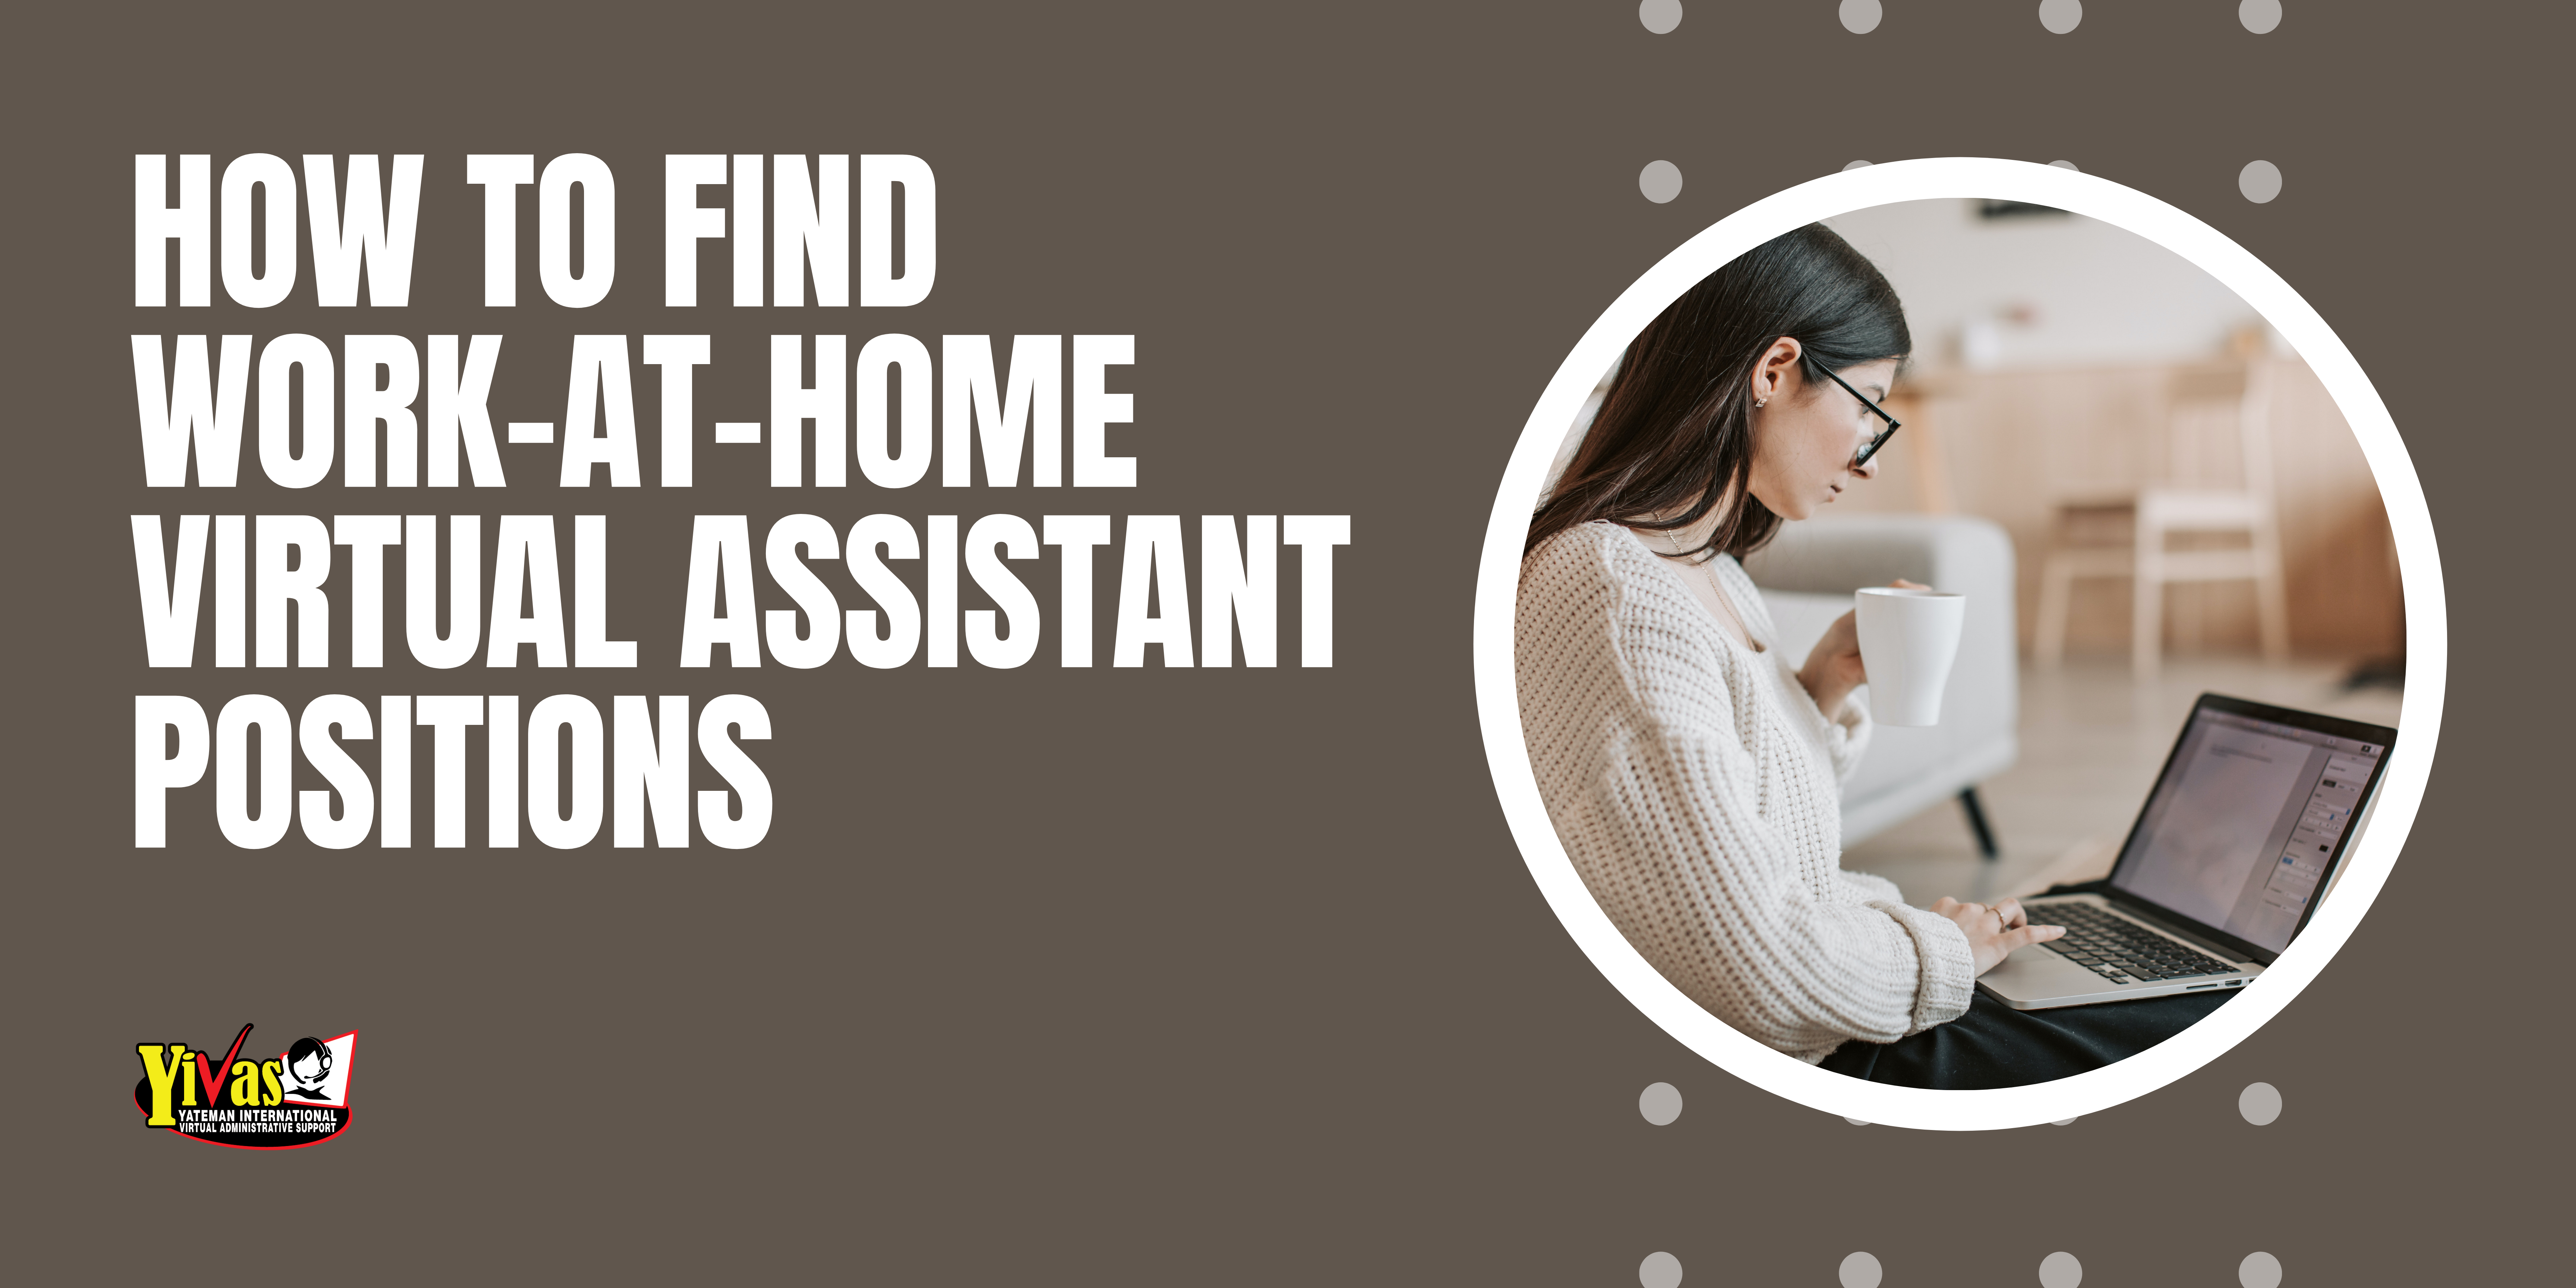 How to Find Work-At-Home Virtual Assistant Positions